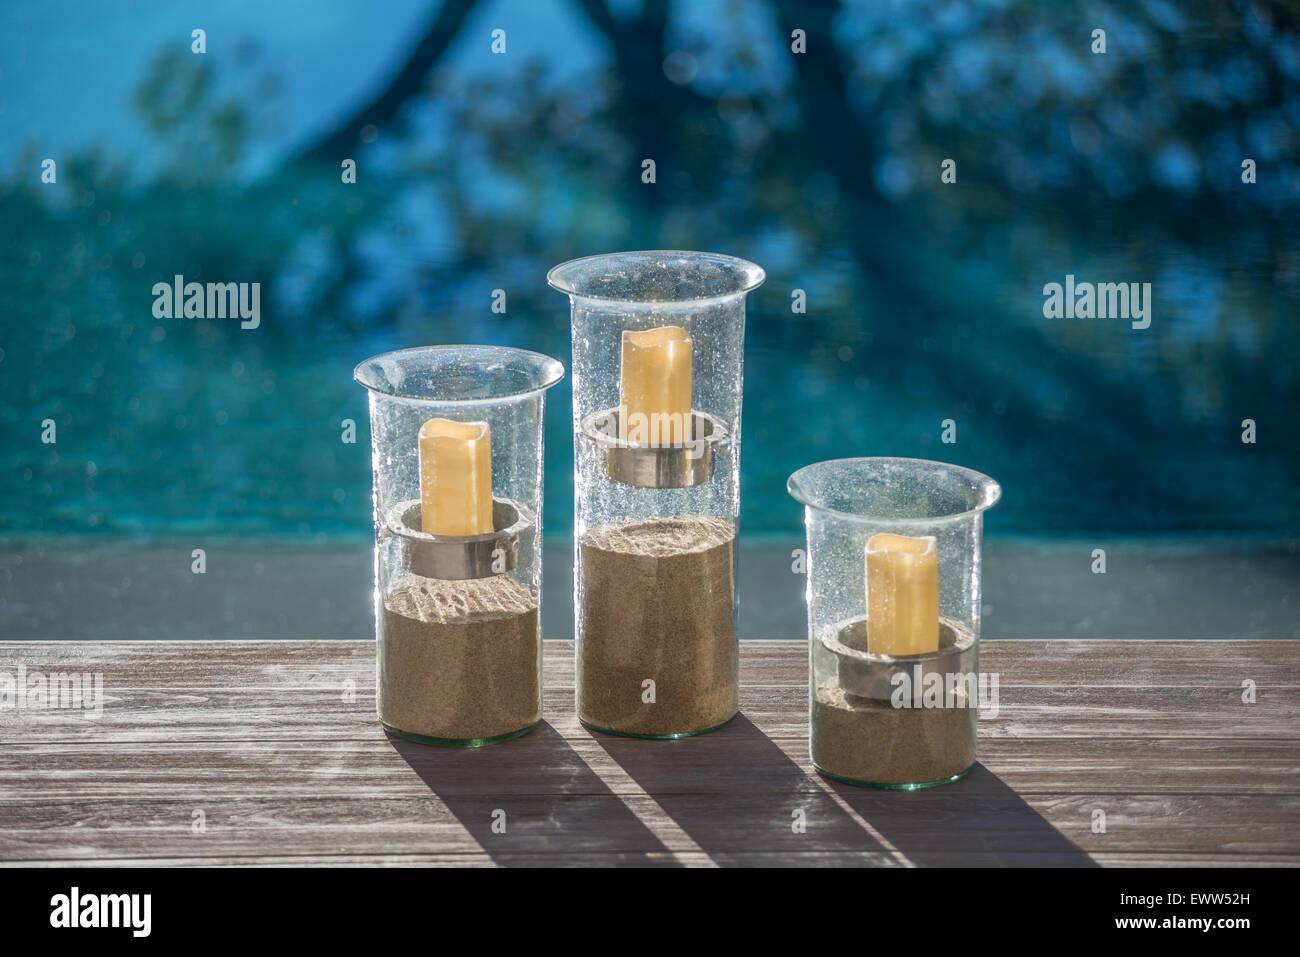 Votive candles suspended above sand in three cylindrical glass vases - Stock Image